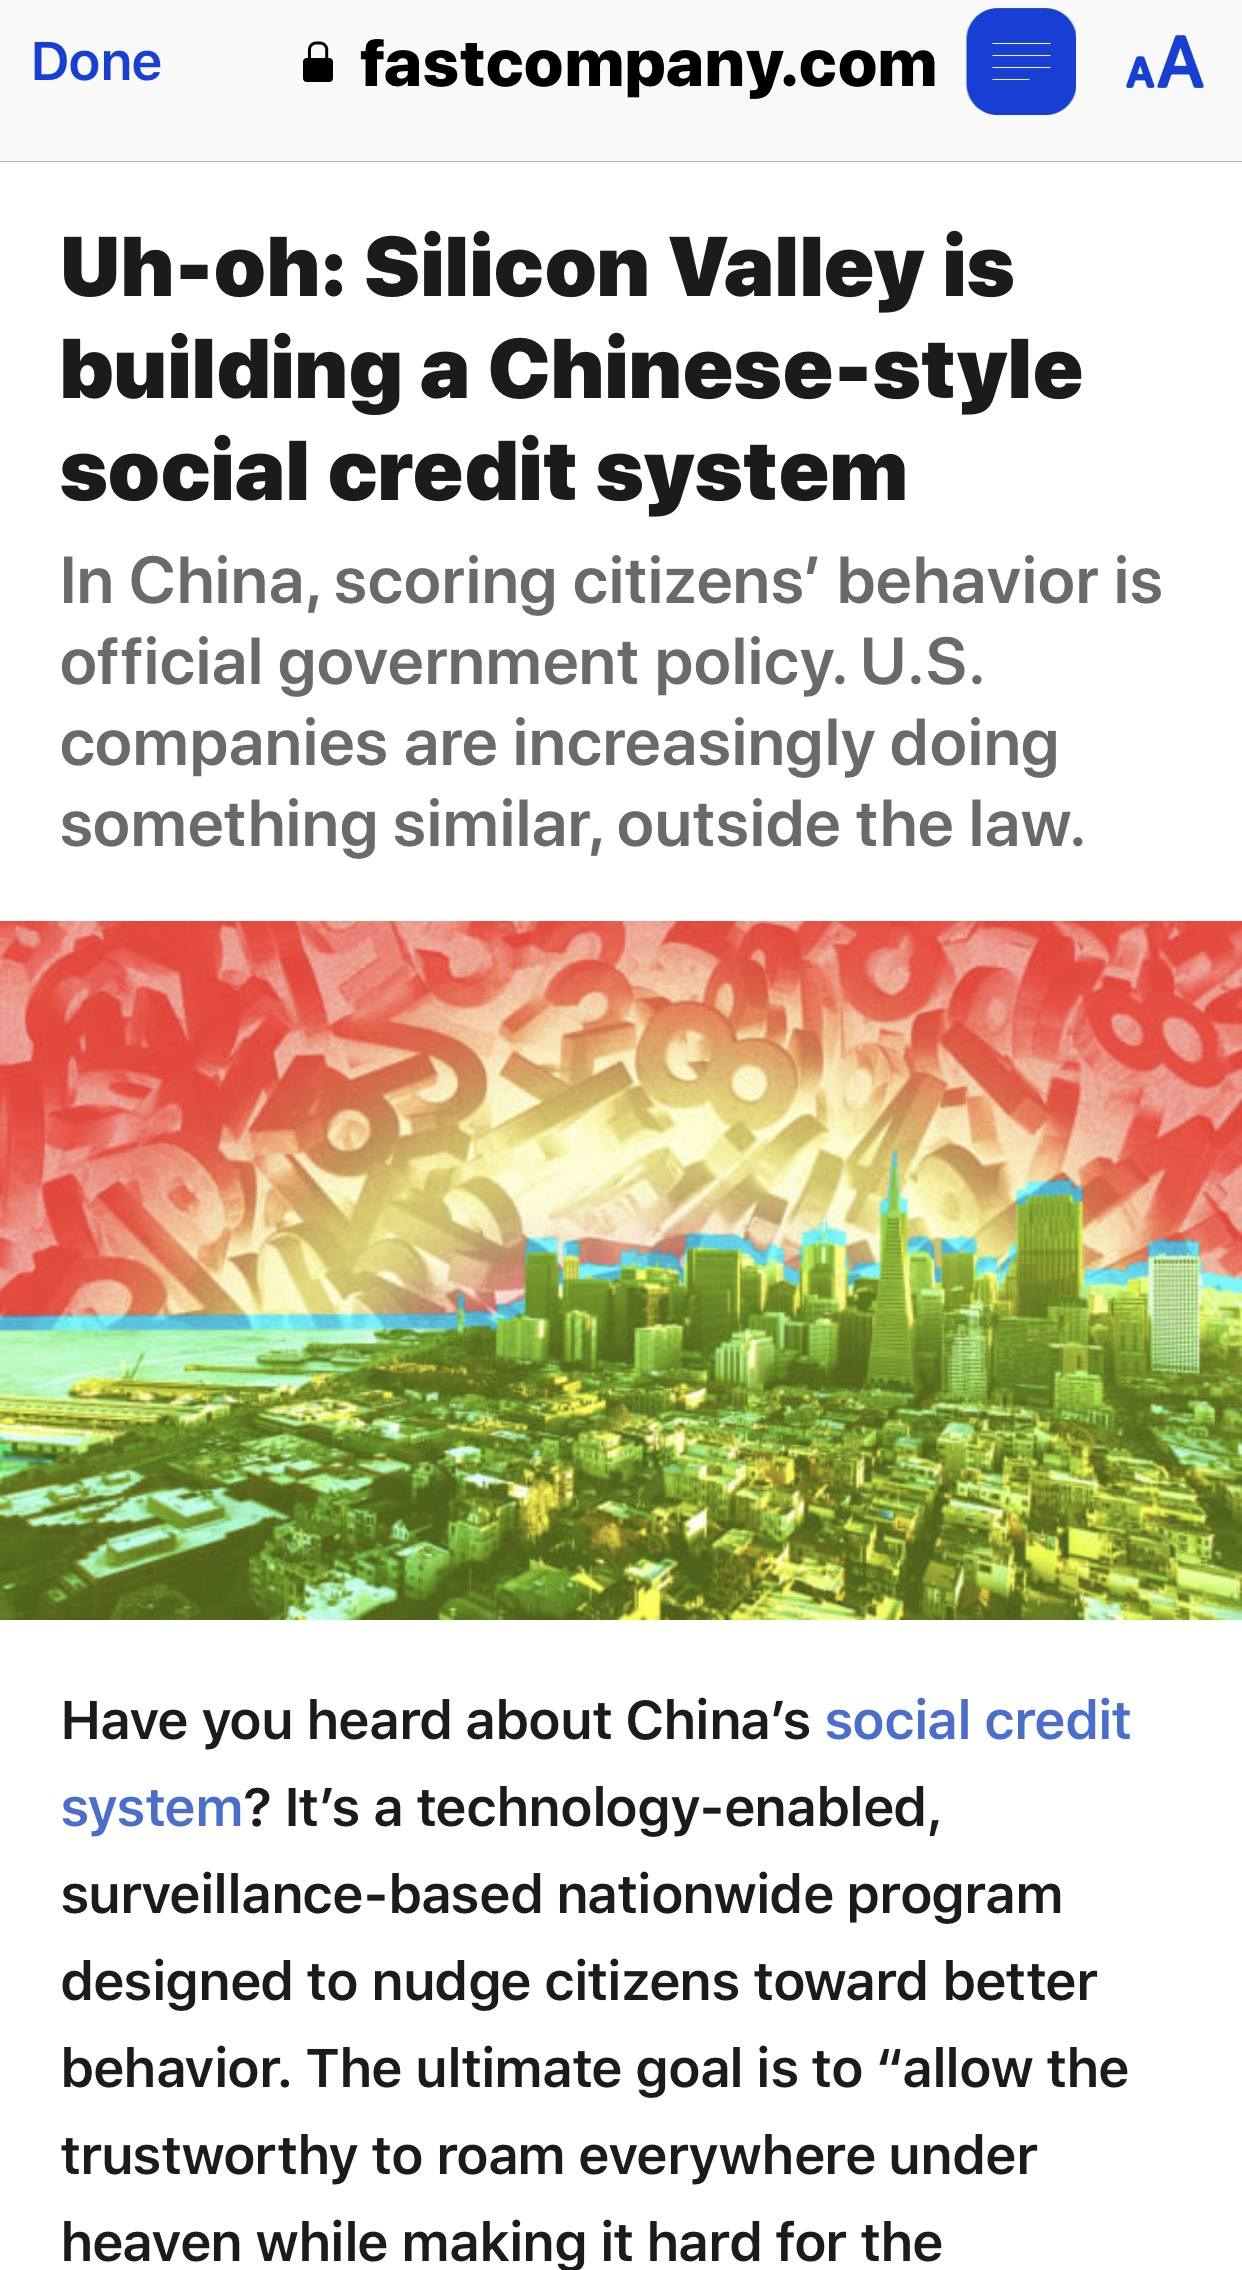 Beware Silicon Valley's Chinese-style social credit system